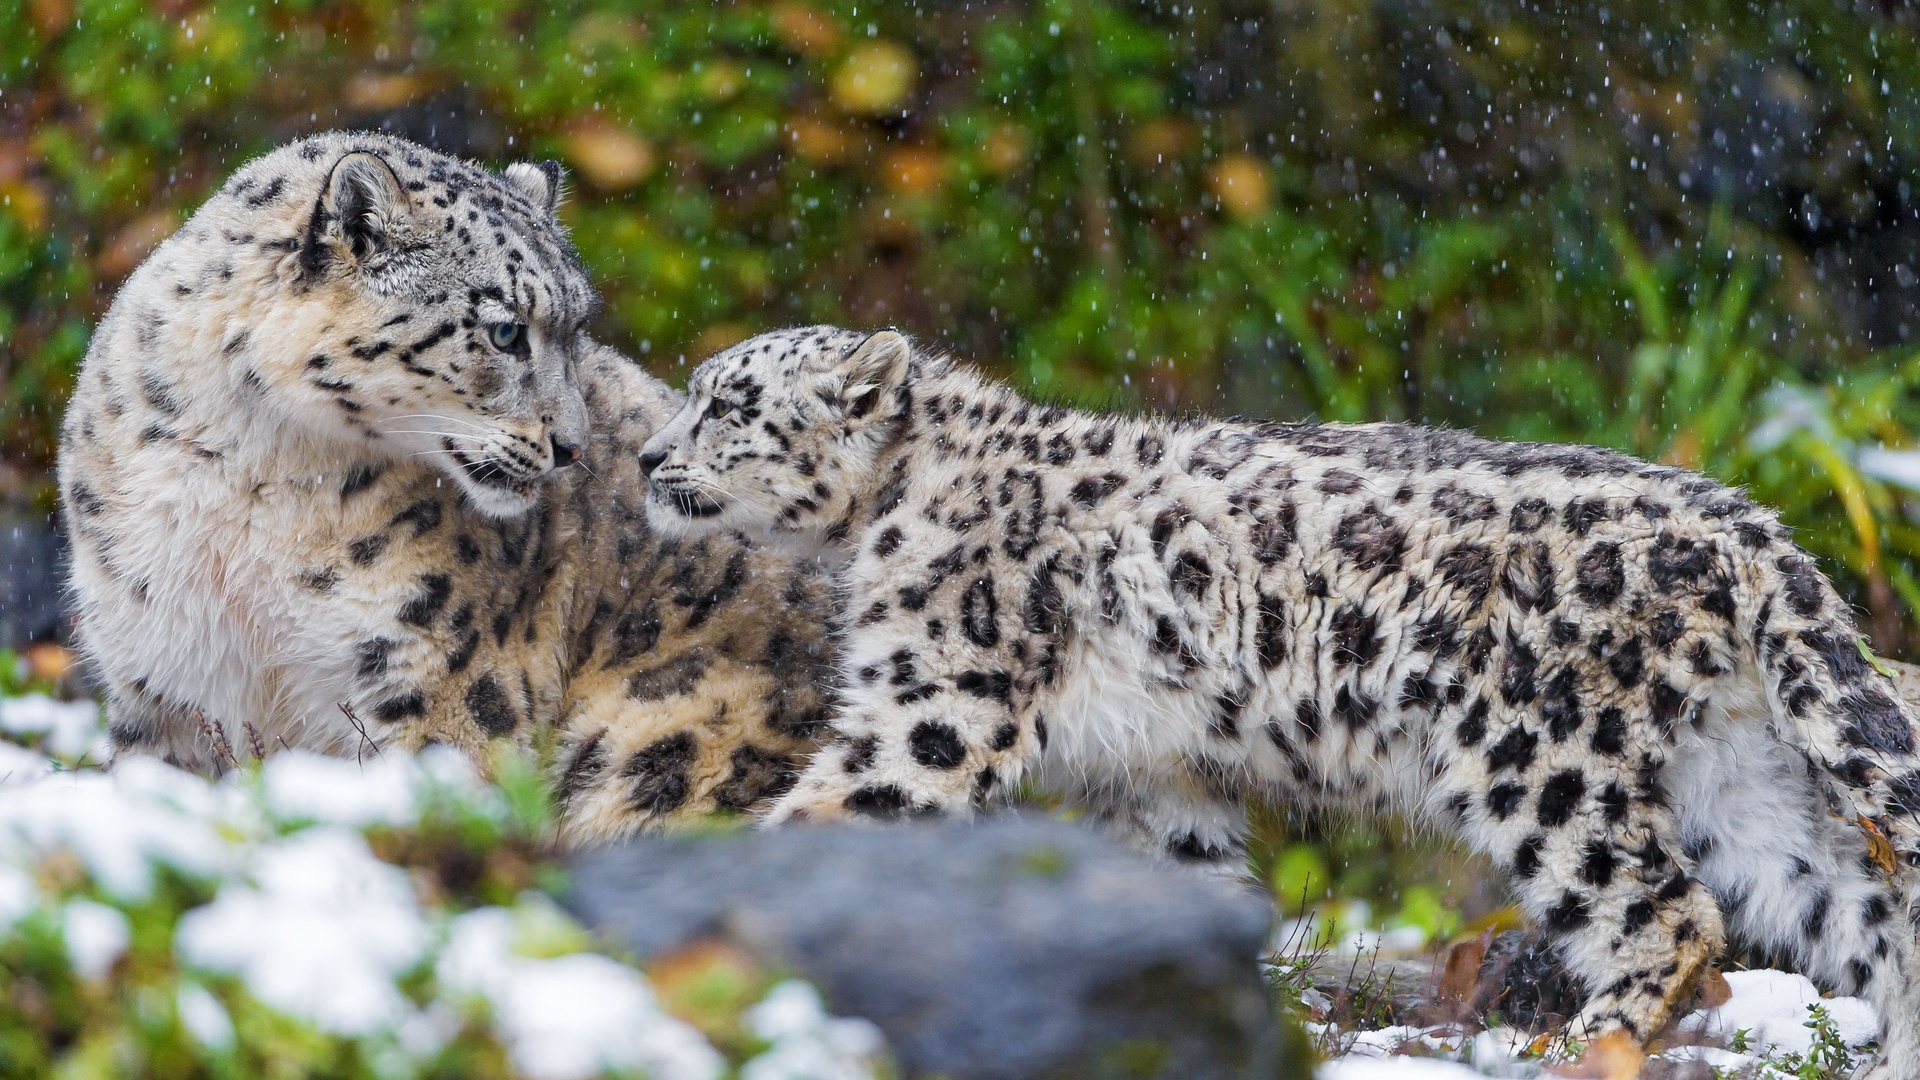 Baby Snow Leopard Wallpaper